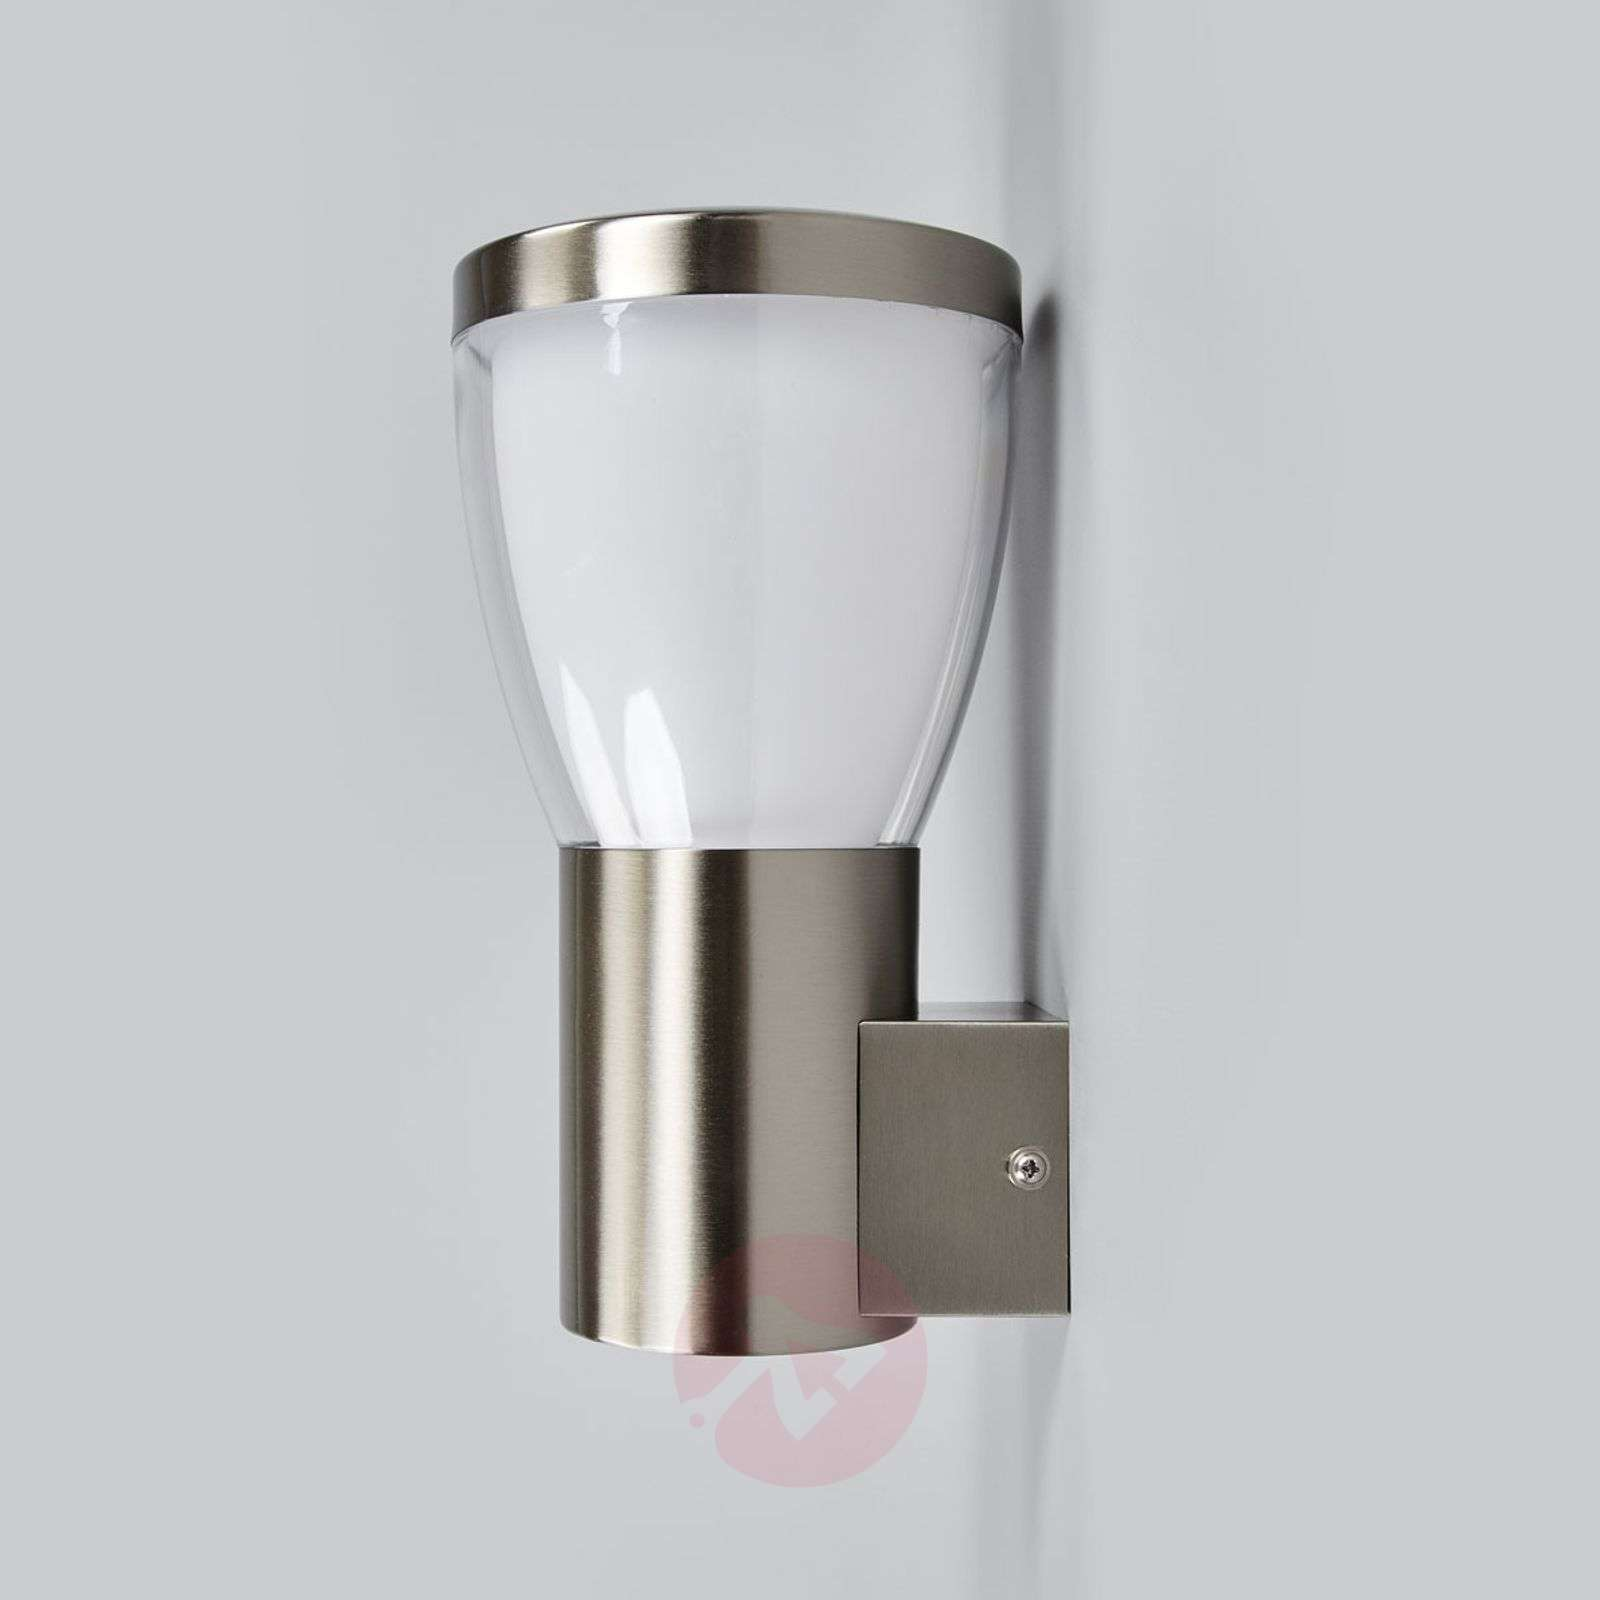 LED outdoor wall lamp Selma, stainless steel-9647086-01